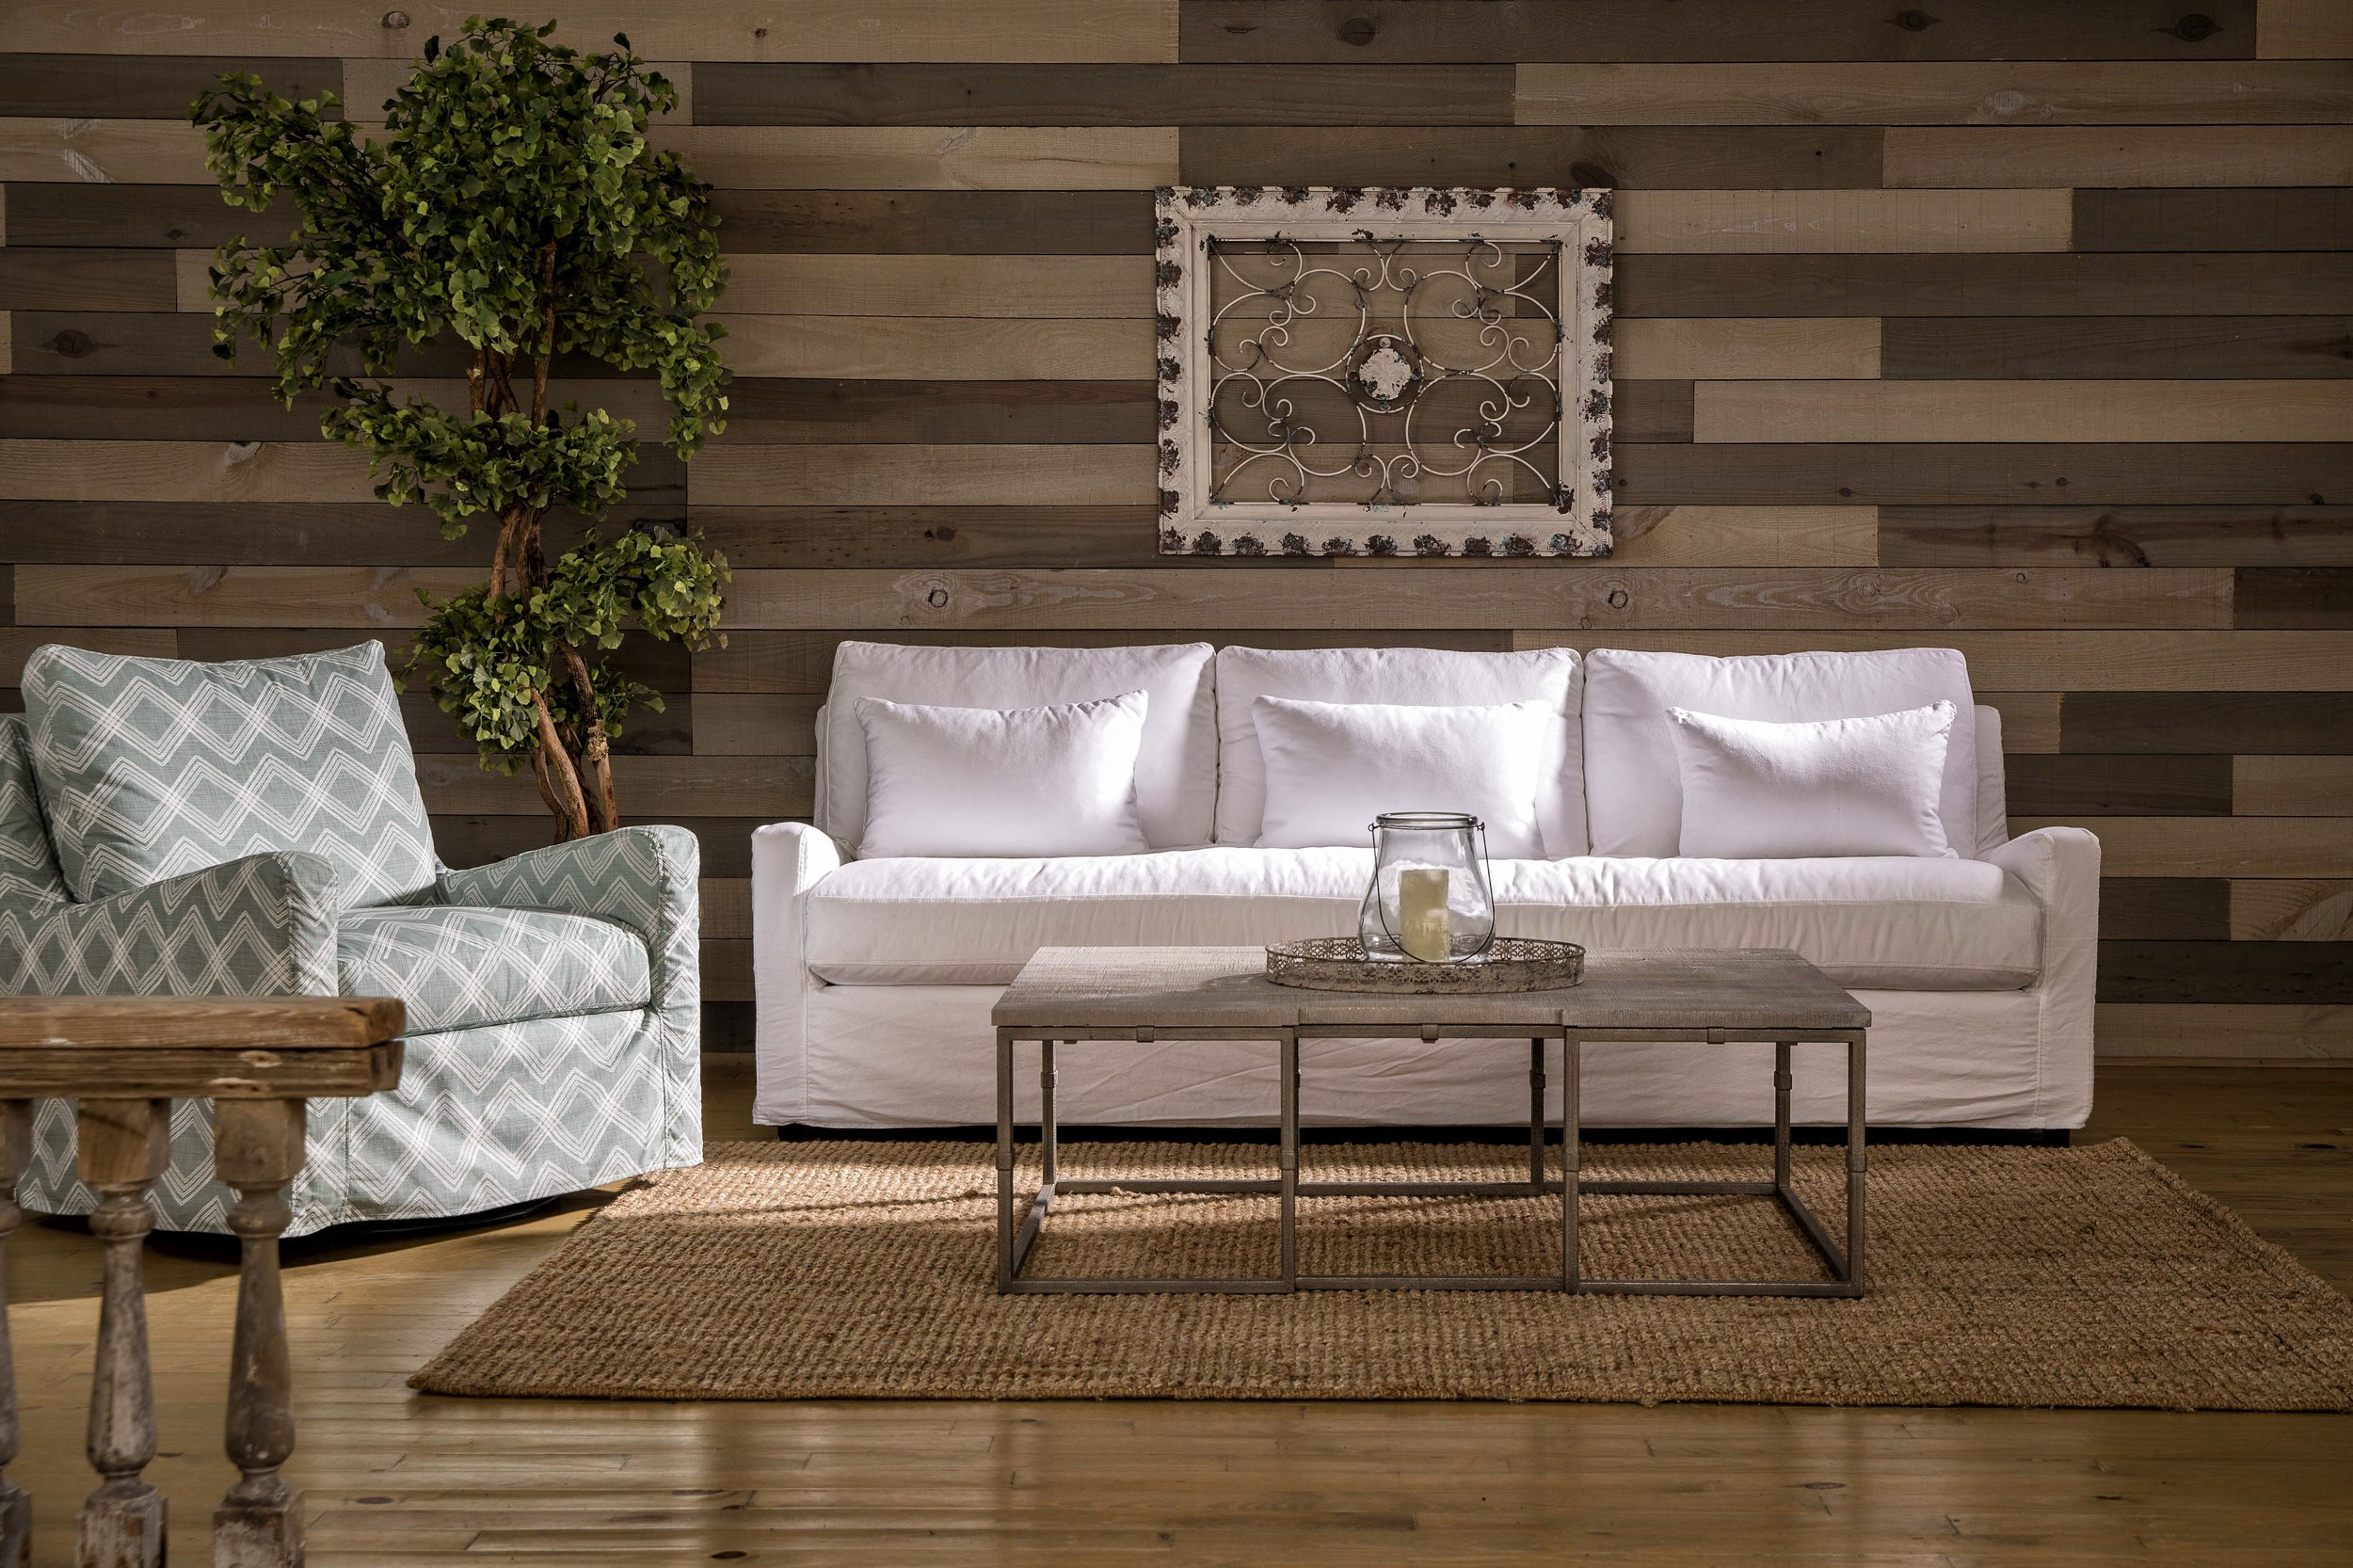 Benton Sofa showroom.jpg